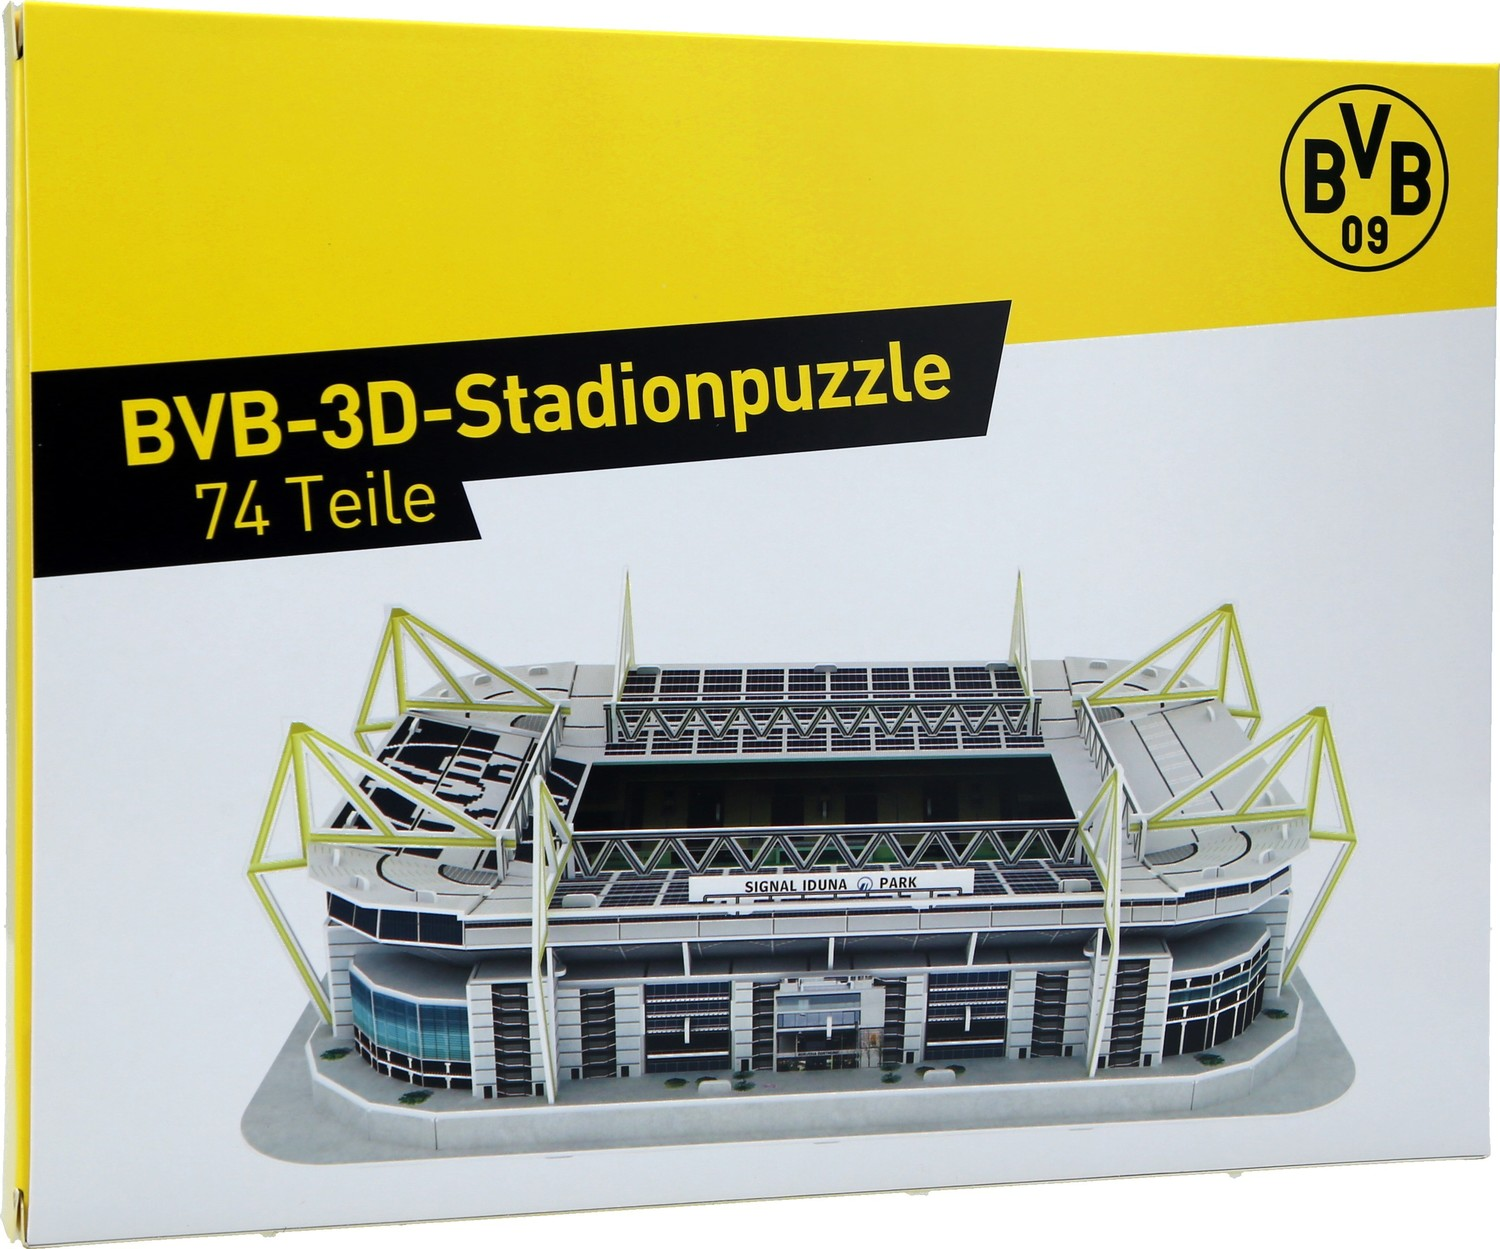 borussia dortmund bvb 3d stadionpuzzle. Black Bedroom Furniture Sets. Home Design Ideas